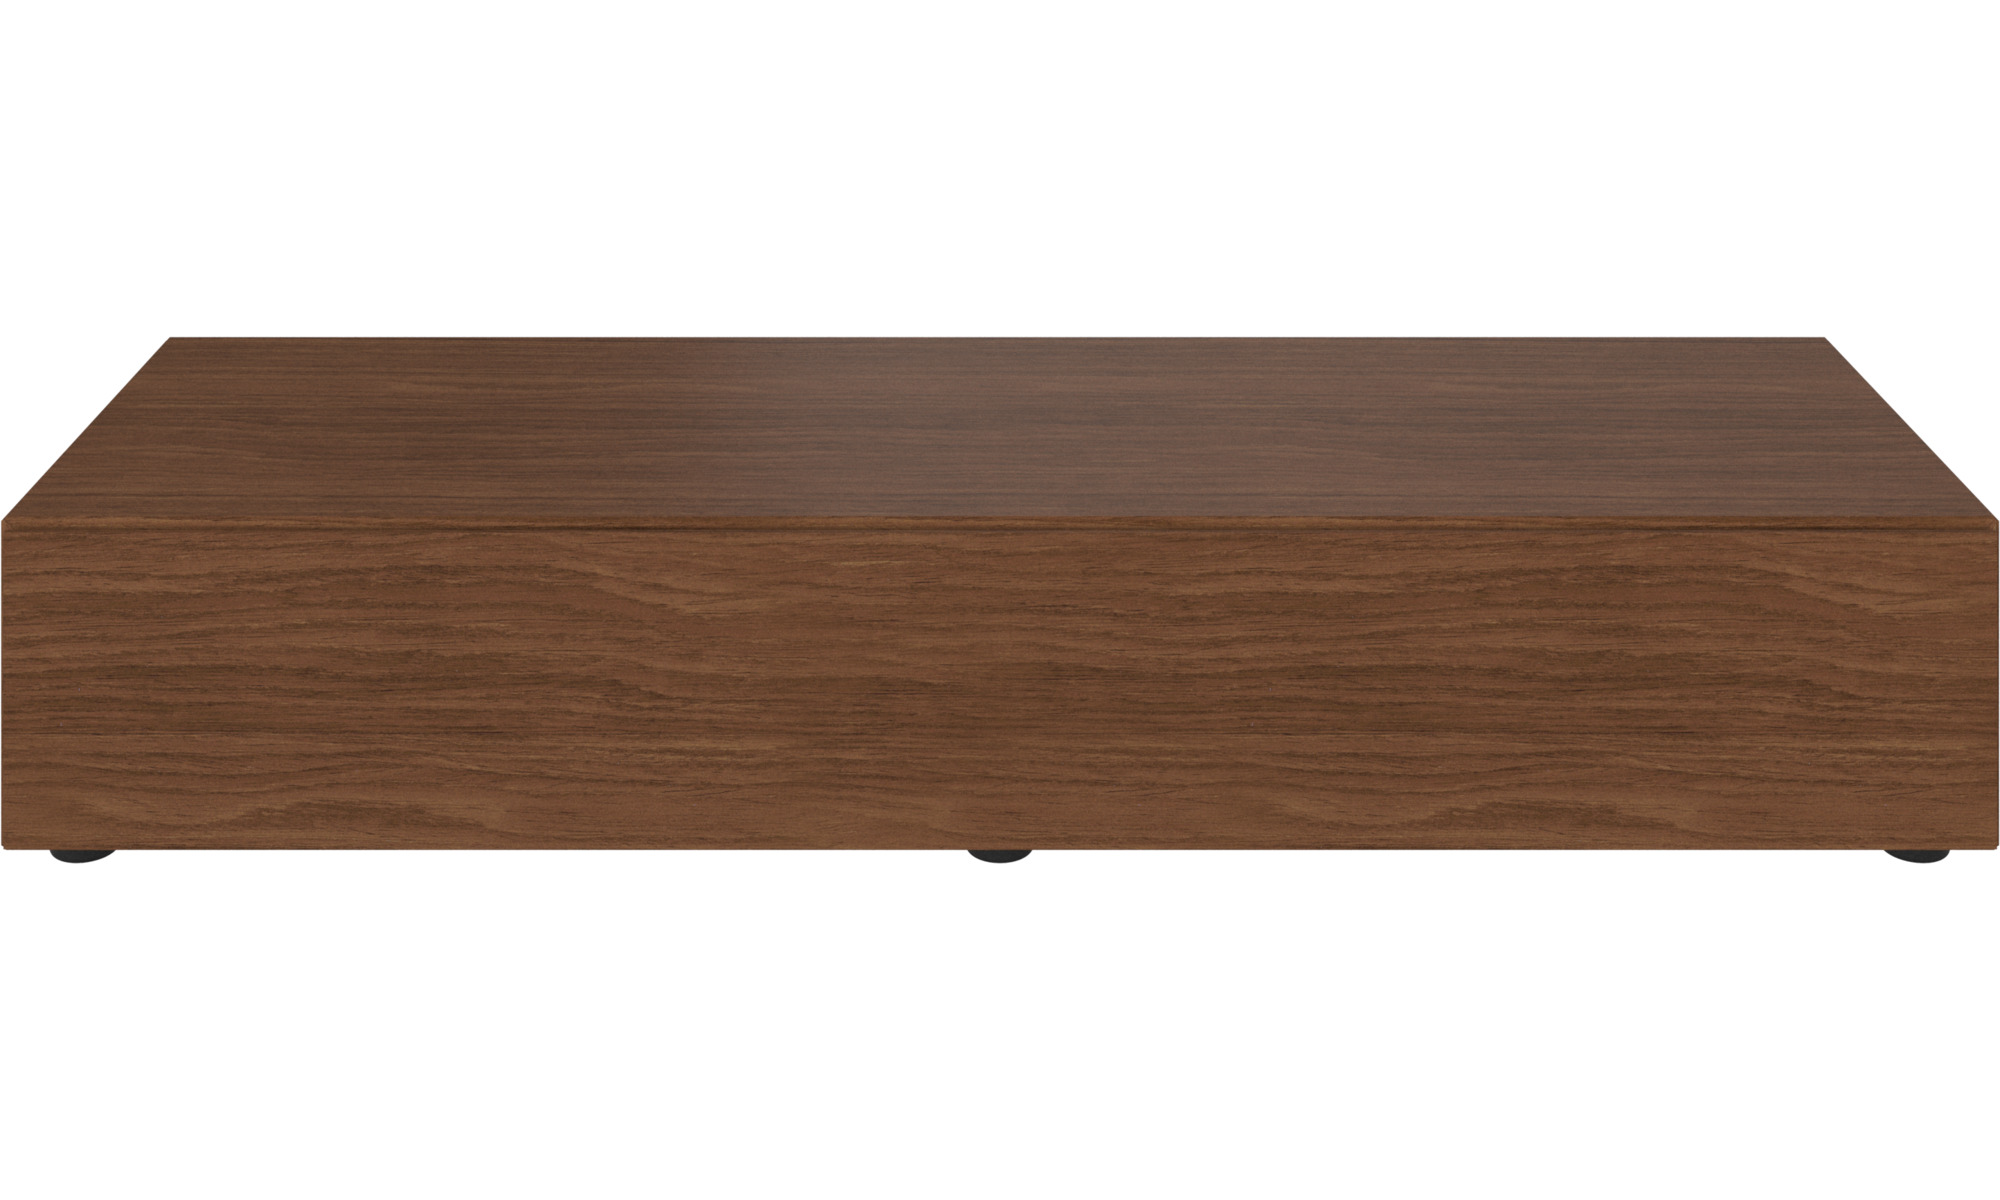 Tv units - Lugano base cabinet with drop down doors - Brown - Walnut